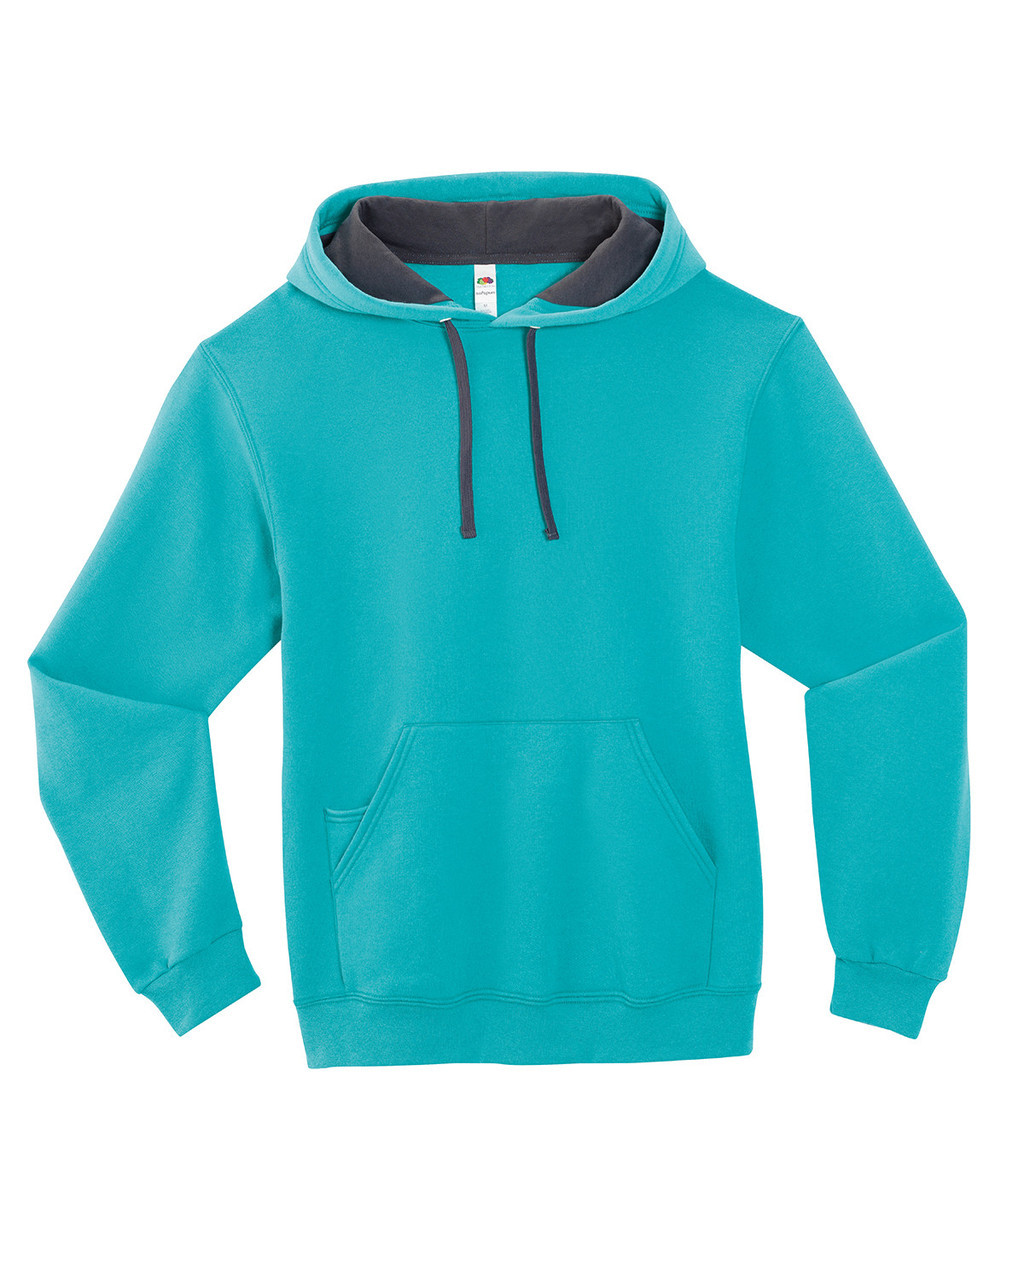 Scuba Blue - SF76R Fruit of the Loom Softspun Hooded Sweatshirt | Blankclothing.ca